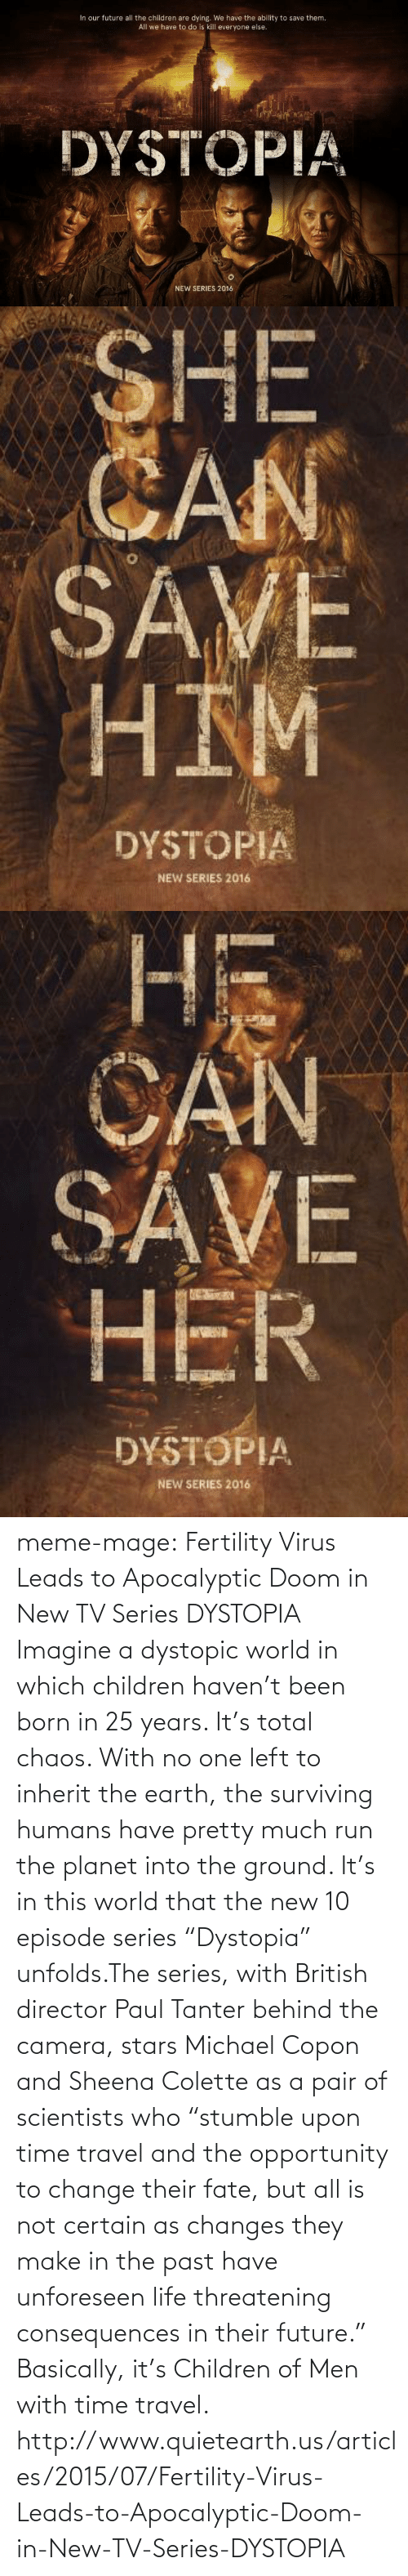 """Children, Future, and Life: In our future all the children are dying. We have the ability to save them.  All we have to do is kill everyone else.  DYSTOPIA  NEW SERIES 2016   SHE  CAN  SAVE  HIM  DYSTOPIA  NEW SERIES 2016   Hi  CAN  SAVE  HER  DYSTOPIA  NEW SERIES 2016 meme-mage:   Fertility Virus Leads to Apocalyptic Doom in New TV Series DYSTOPIA     Imagine a dystopic world in which children haven't been born in 25 years. It's total chaos. With no one left to inherit the earth, the surviving humans have pretty much run the planet into the ground. It's in this world that the new 10 episode series """"Dystopia"""" unfolds.The series, with British director Paul Tanter behind the camera, stars Michael Copon and Sheena Colette as a pair of scientists who """"stumble upon time travel and the opportunity to change their fate, but all is not certain as changes they make in the past have unforeseen life threatening consequences in their future."""" Basically, it's Children of Men with time travel. http://www.quietearth.us/articles/2015/07/Fertility-Virus-Leads-to-Apocalyptic-Doom-in-New-TV-Series-DYSTOPIA"""